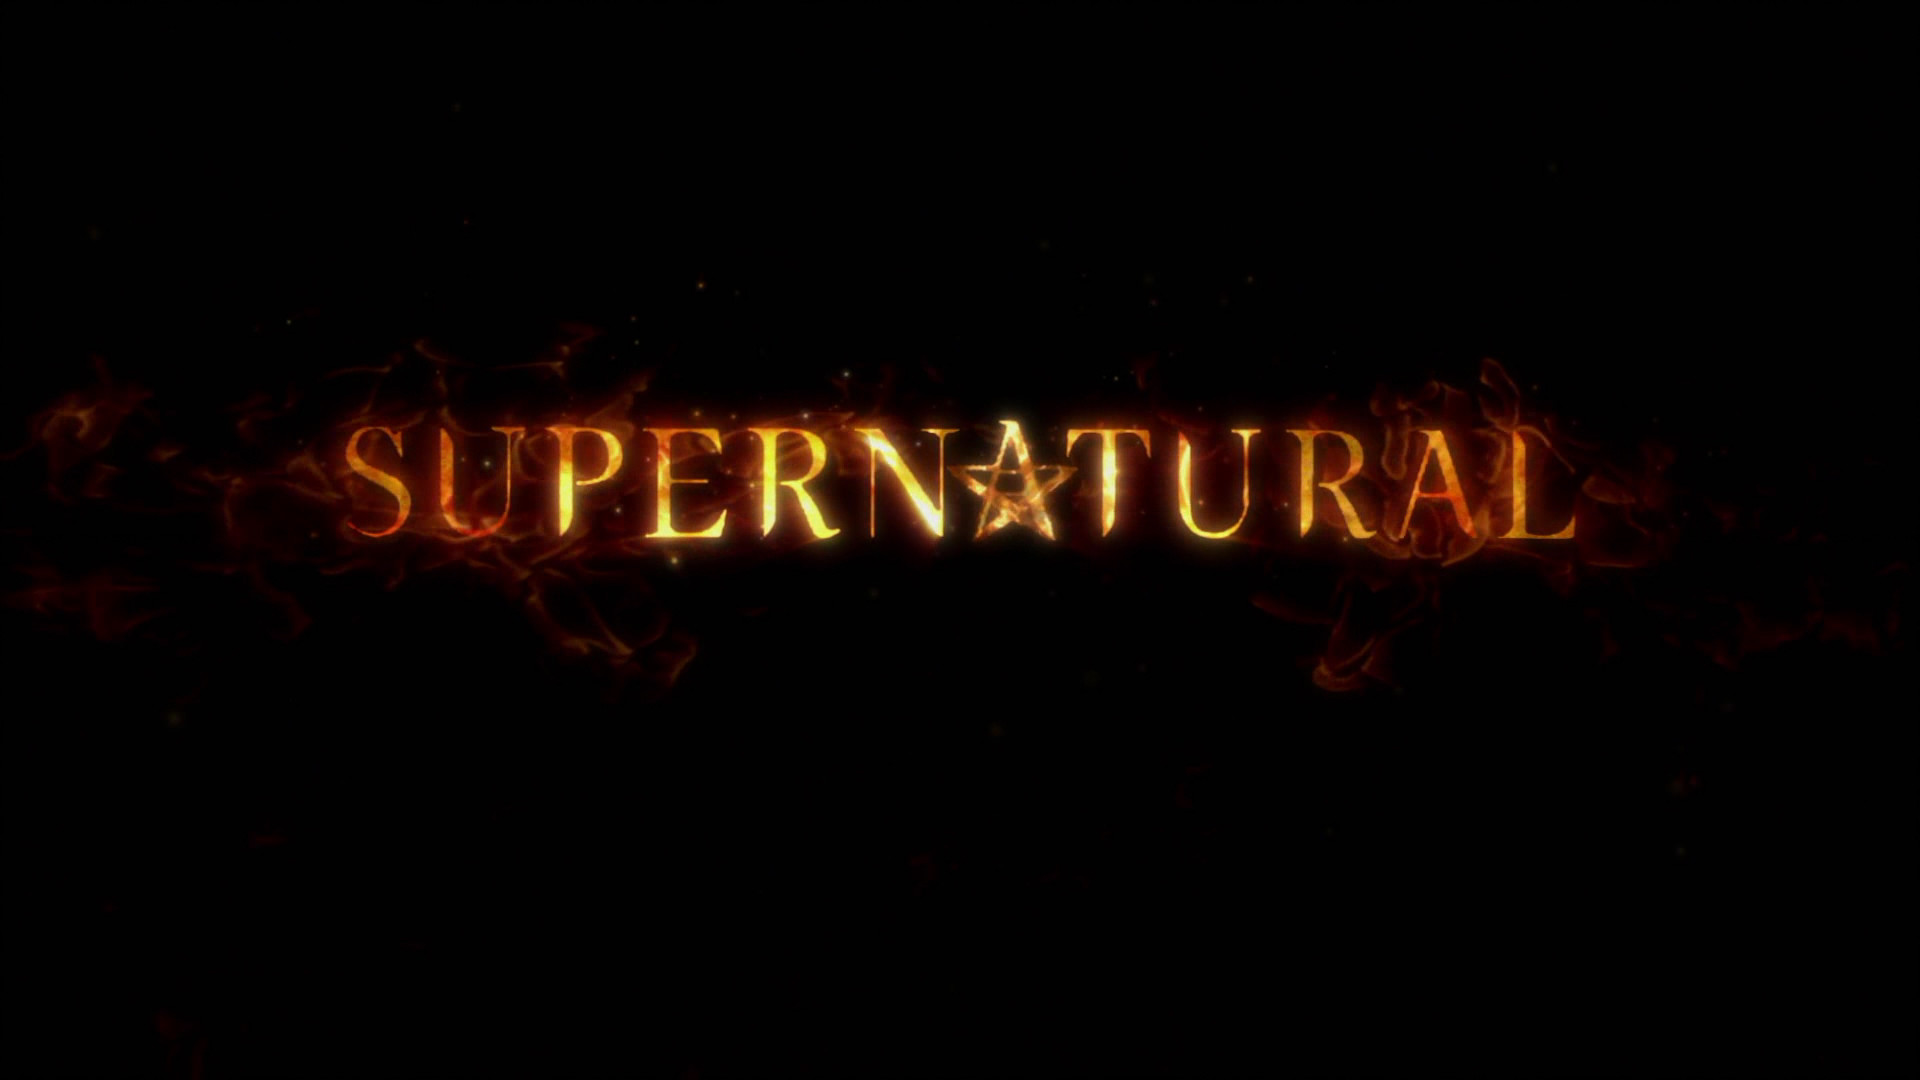 Supernatural Screensavers   Signs Supernatural is Taking Over Your Life    House of Blog